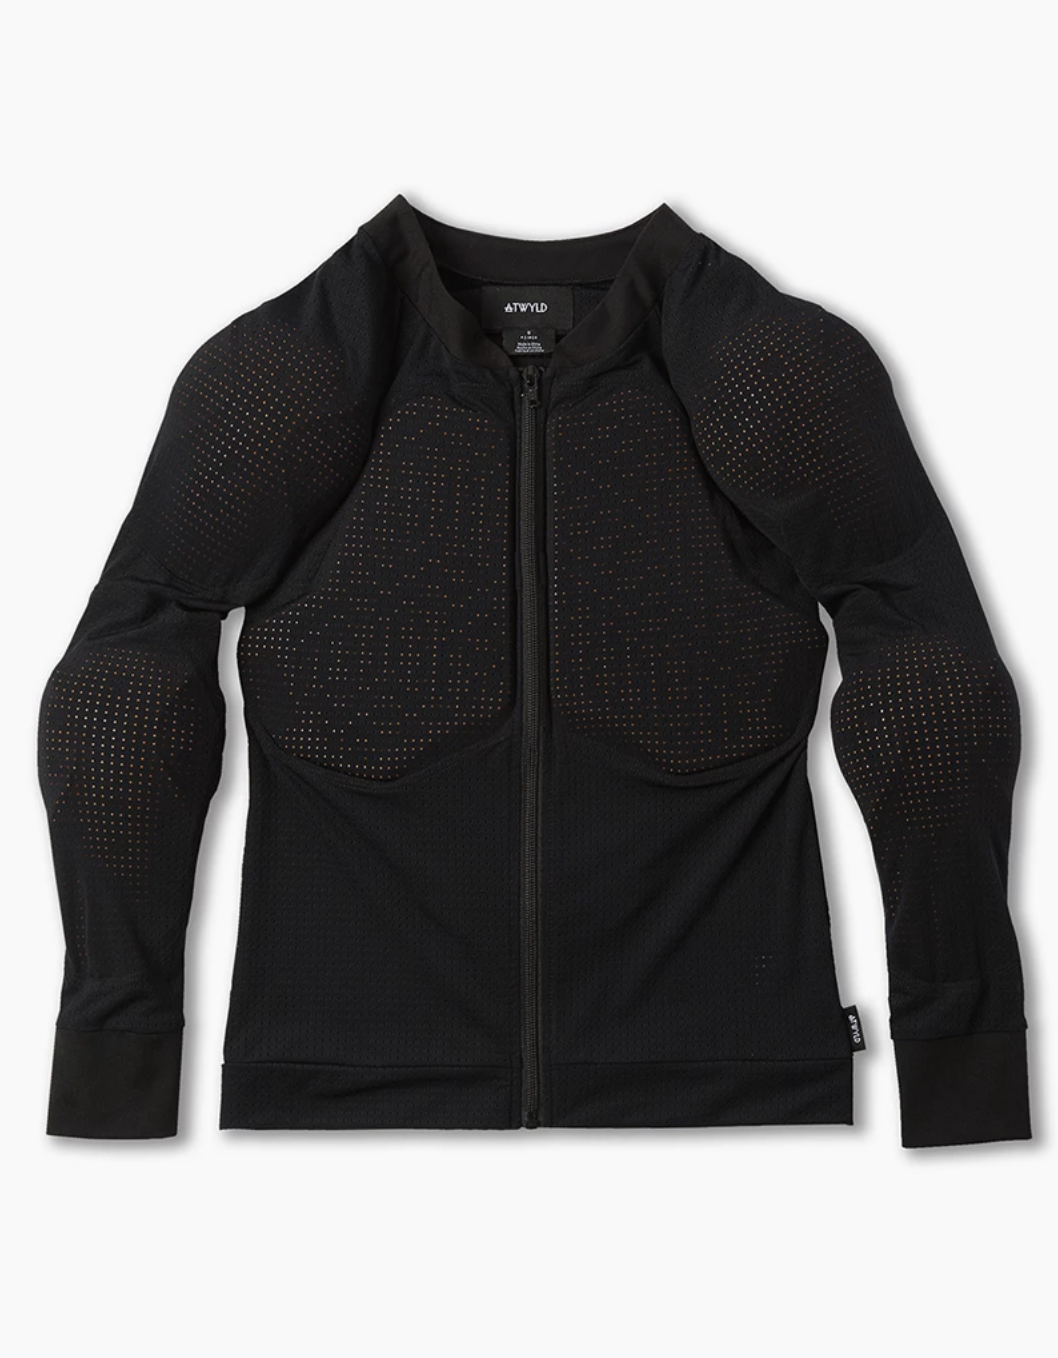 BARRICADE ARMORED SHIRT - WITH CE LEVEL 1 D30 ARMOR. LAYER THIS BABY UNDER YOUR RIDING JACKET FOR A BREATHABLE AND COMFORTABLE ADDED LAYER.